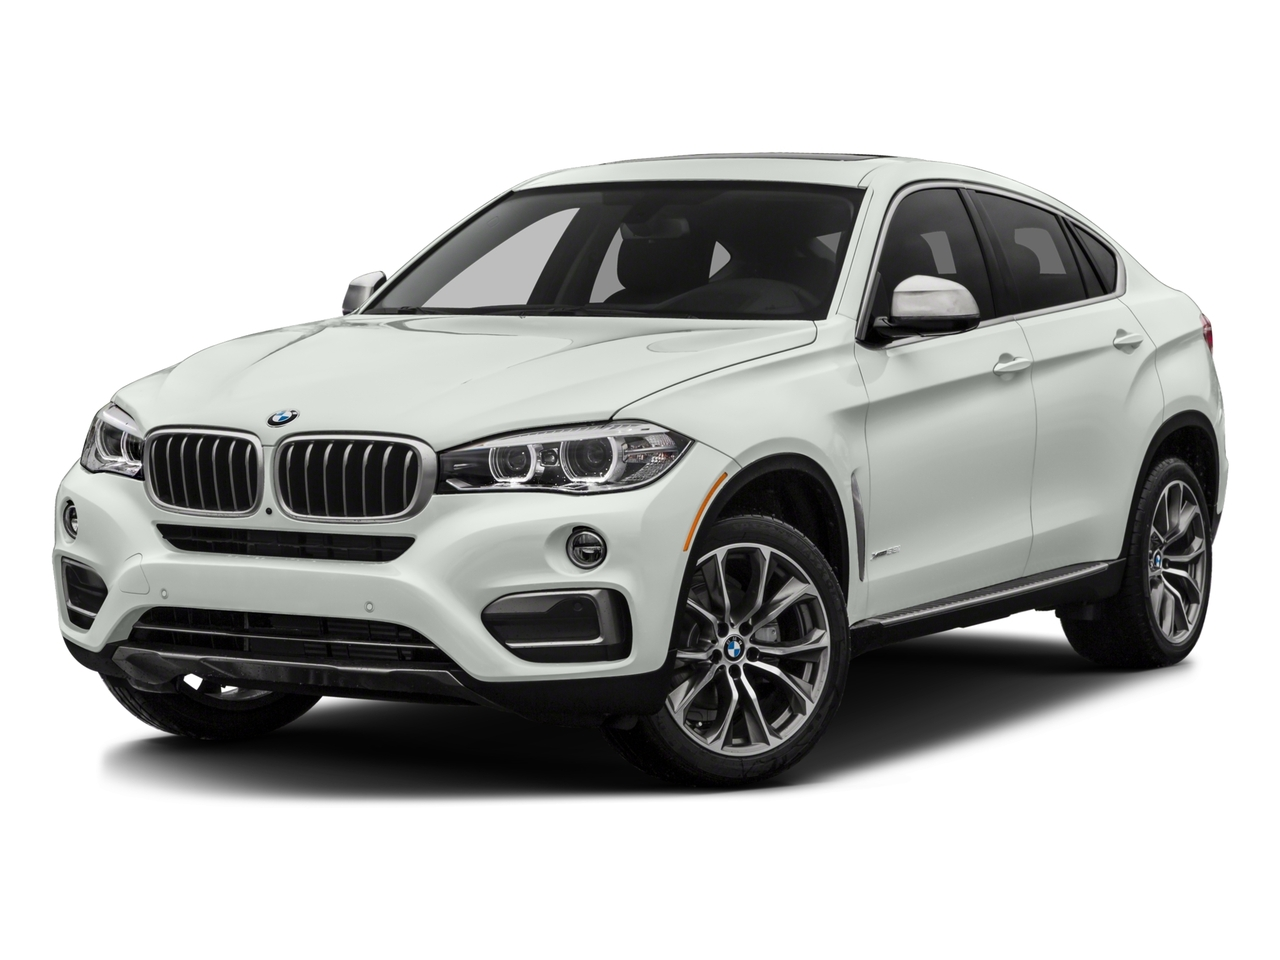 2017 BMW X6 - Huntington, NY